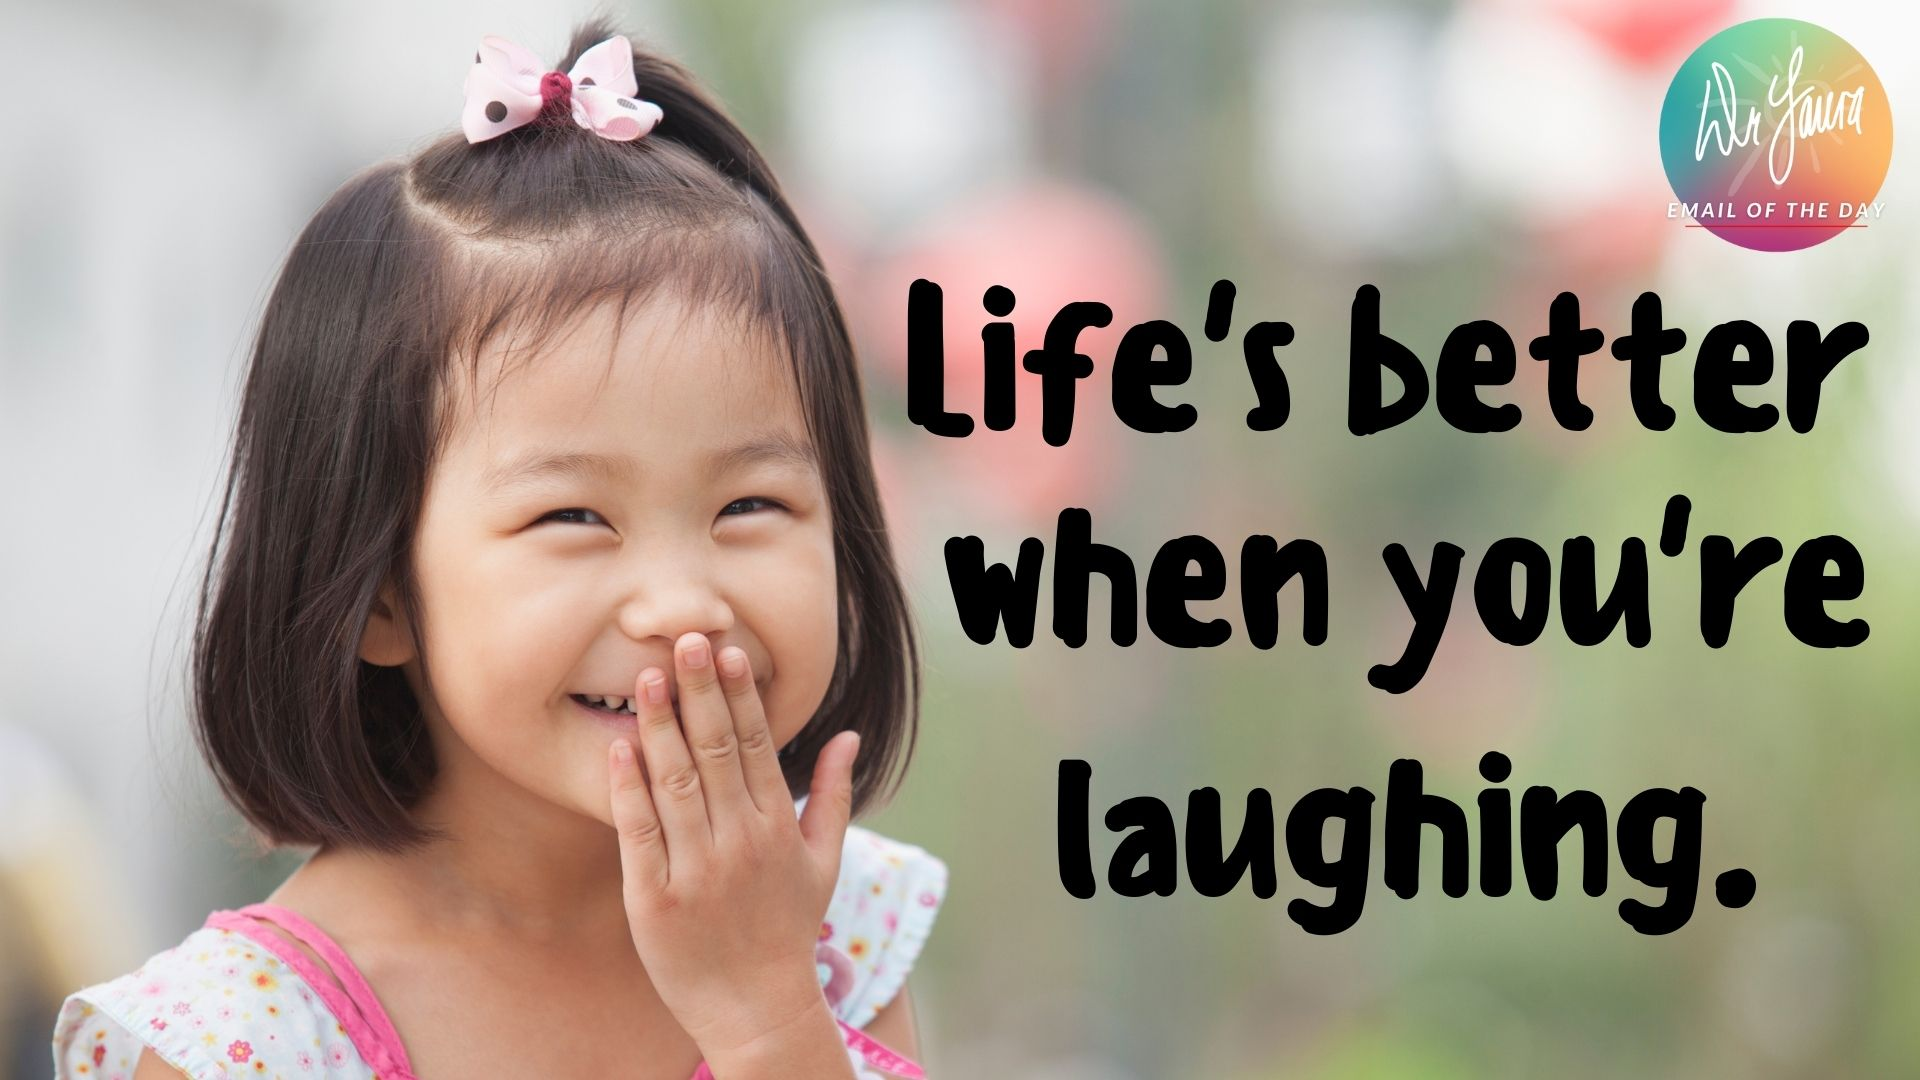 Email of the Day: Laughter Really Is the Best Medicine!